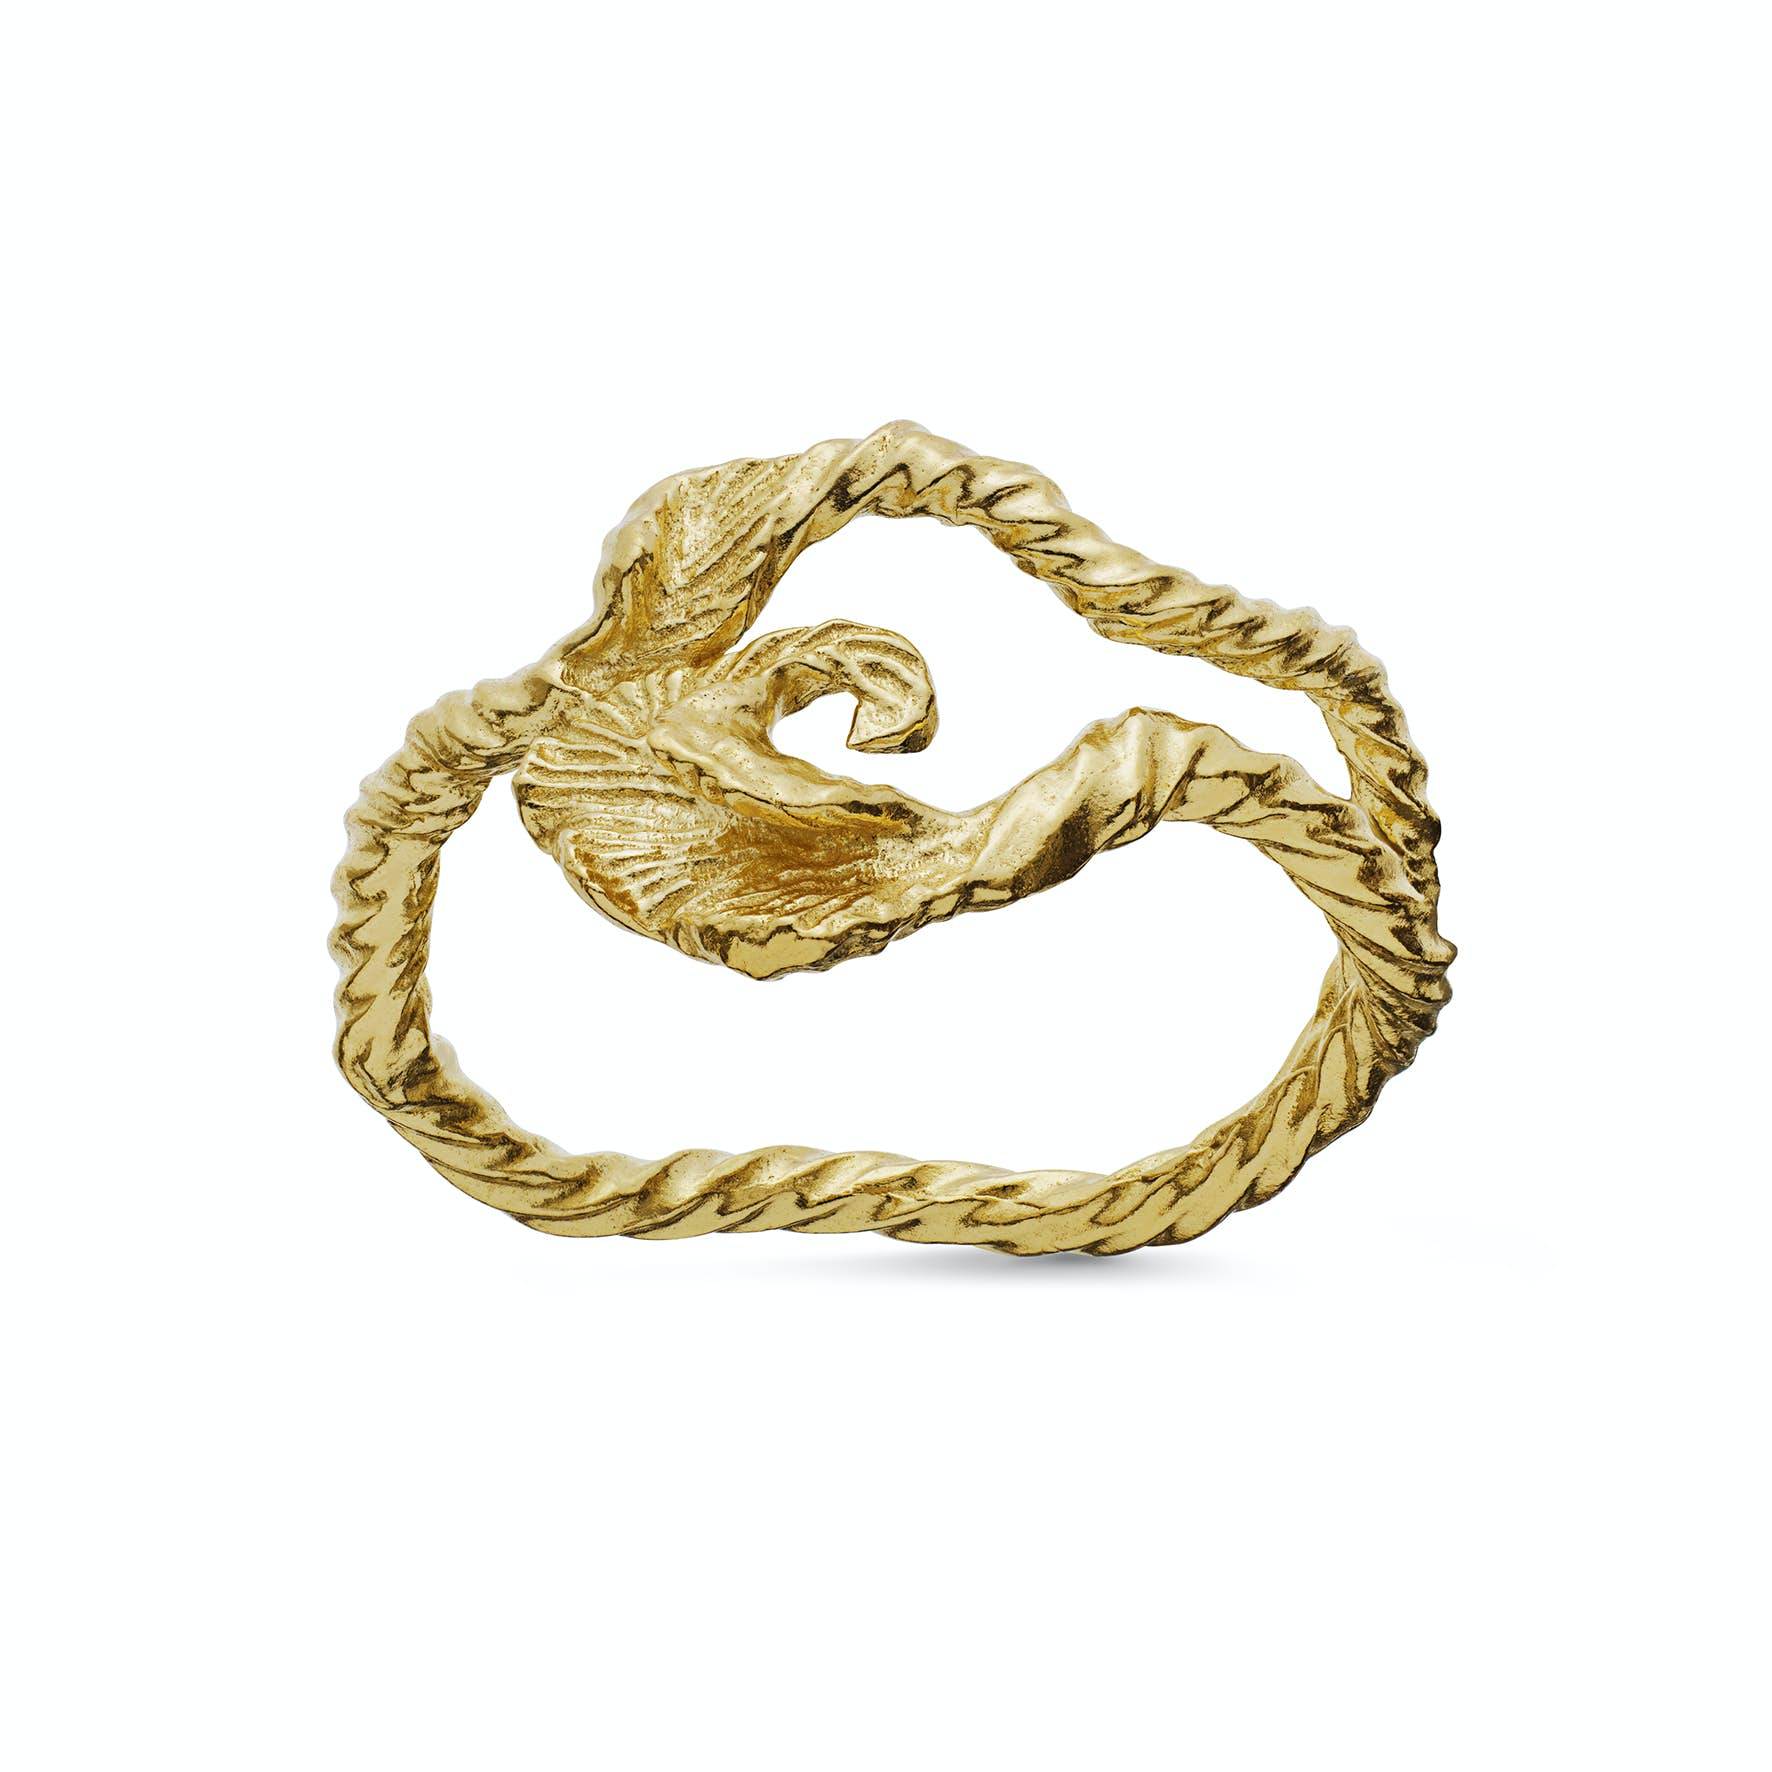 Esol Ring from Maanesten in Goldplated-Silver Sterling 925